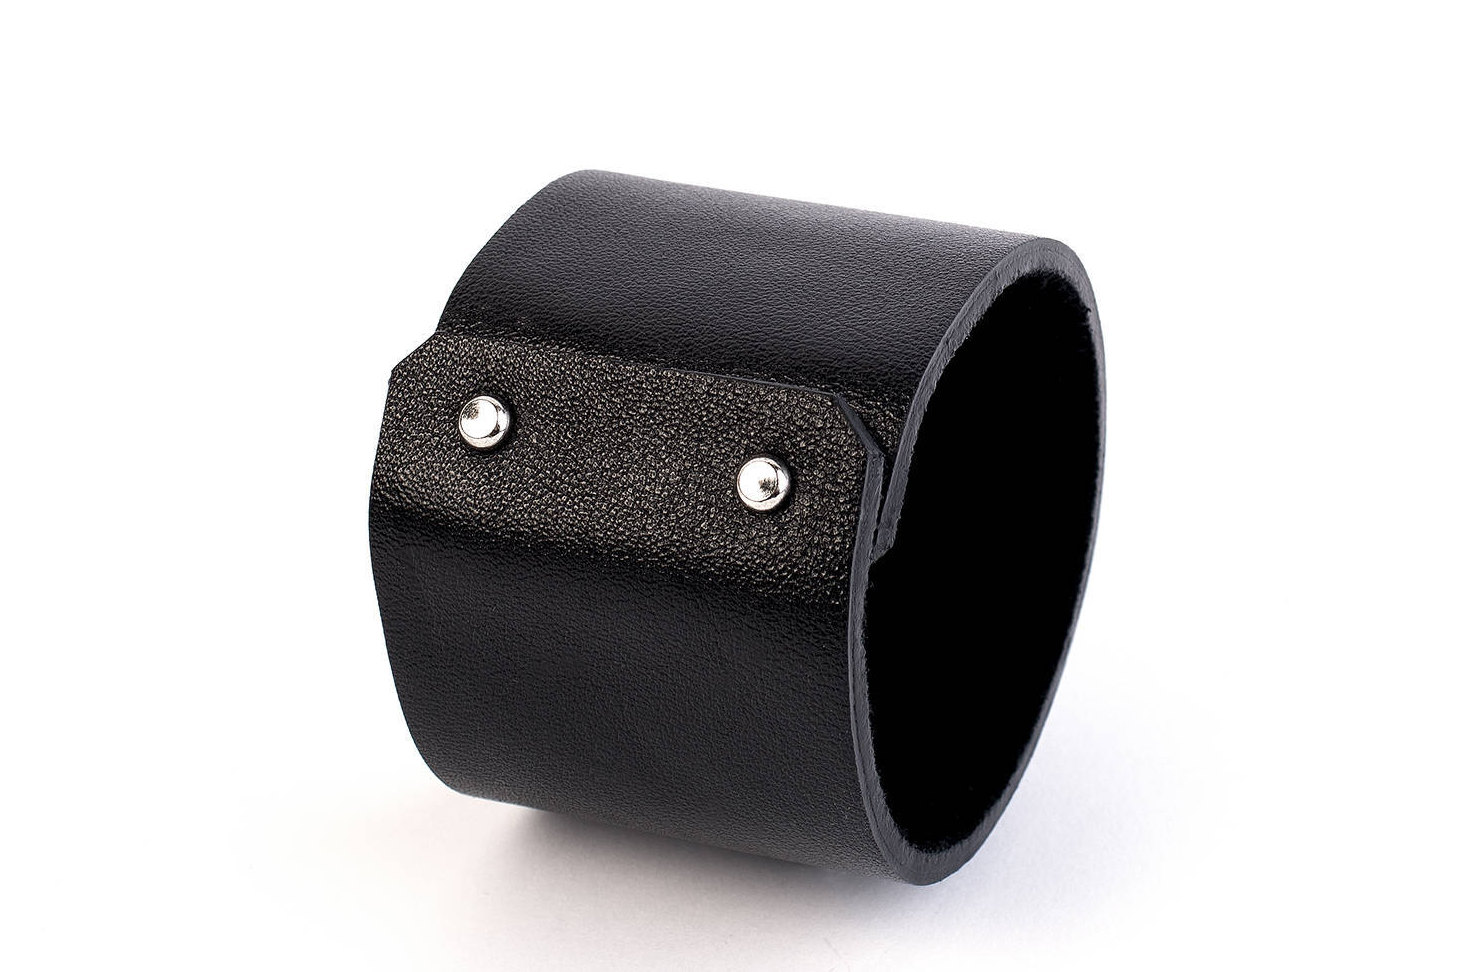 d39bf2271bf5c Women leather bracelet, Women leather cuff, Black cuff bracelet, Black  leather bracelet, Leather bracelets, Wide leather cuff, Onyx bracelet from  ...